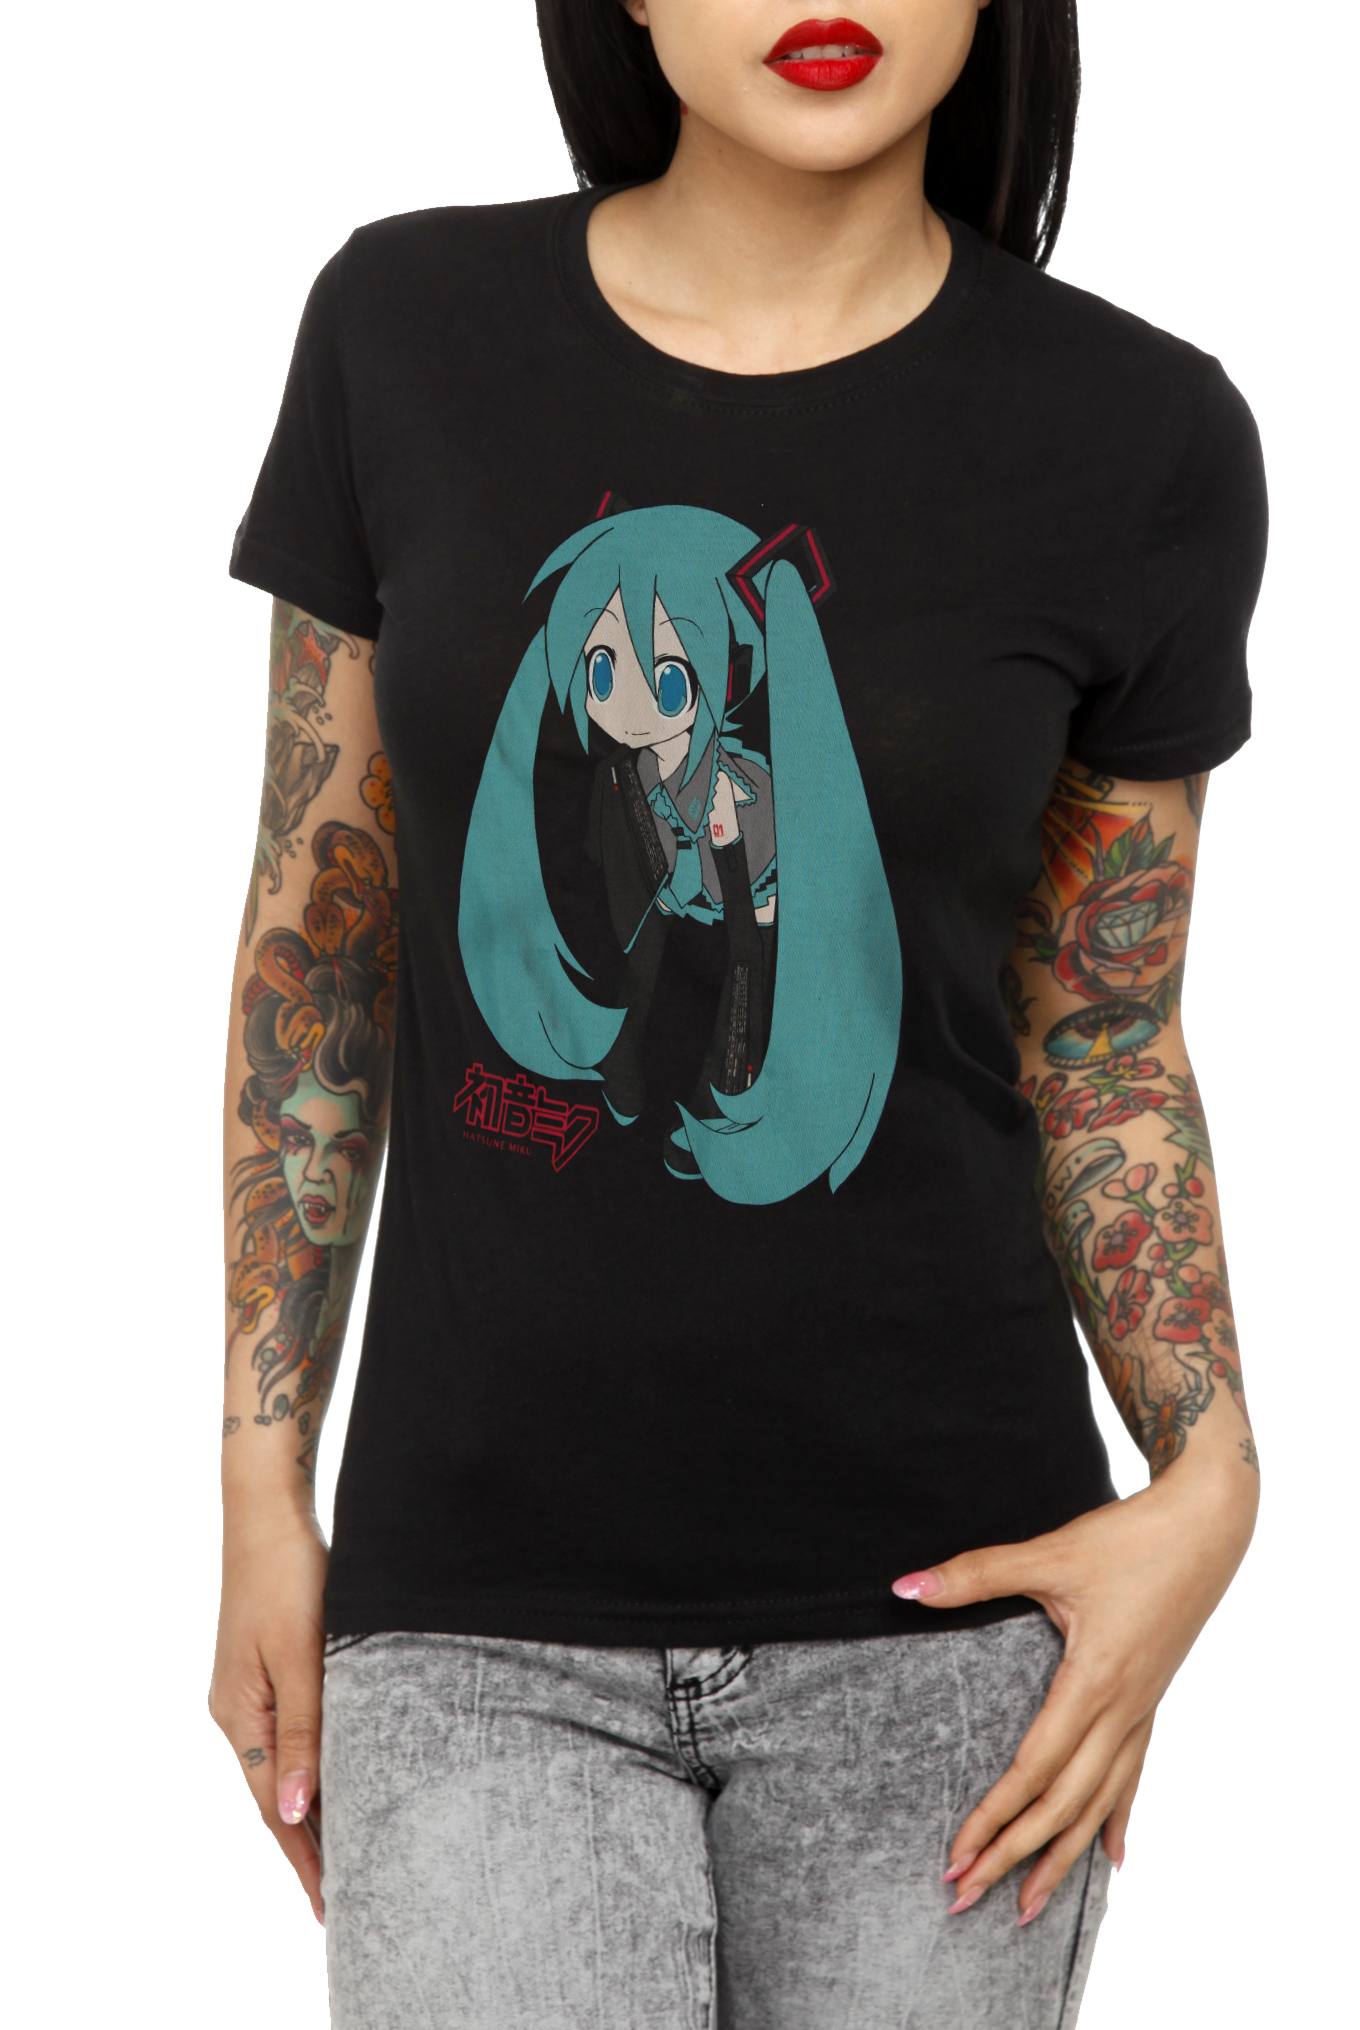 hatsune miku hot topic-#18